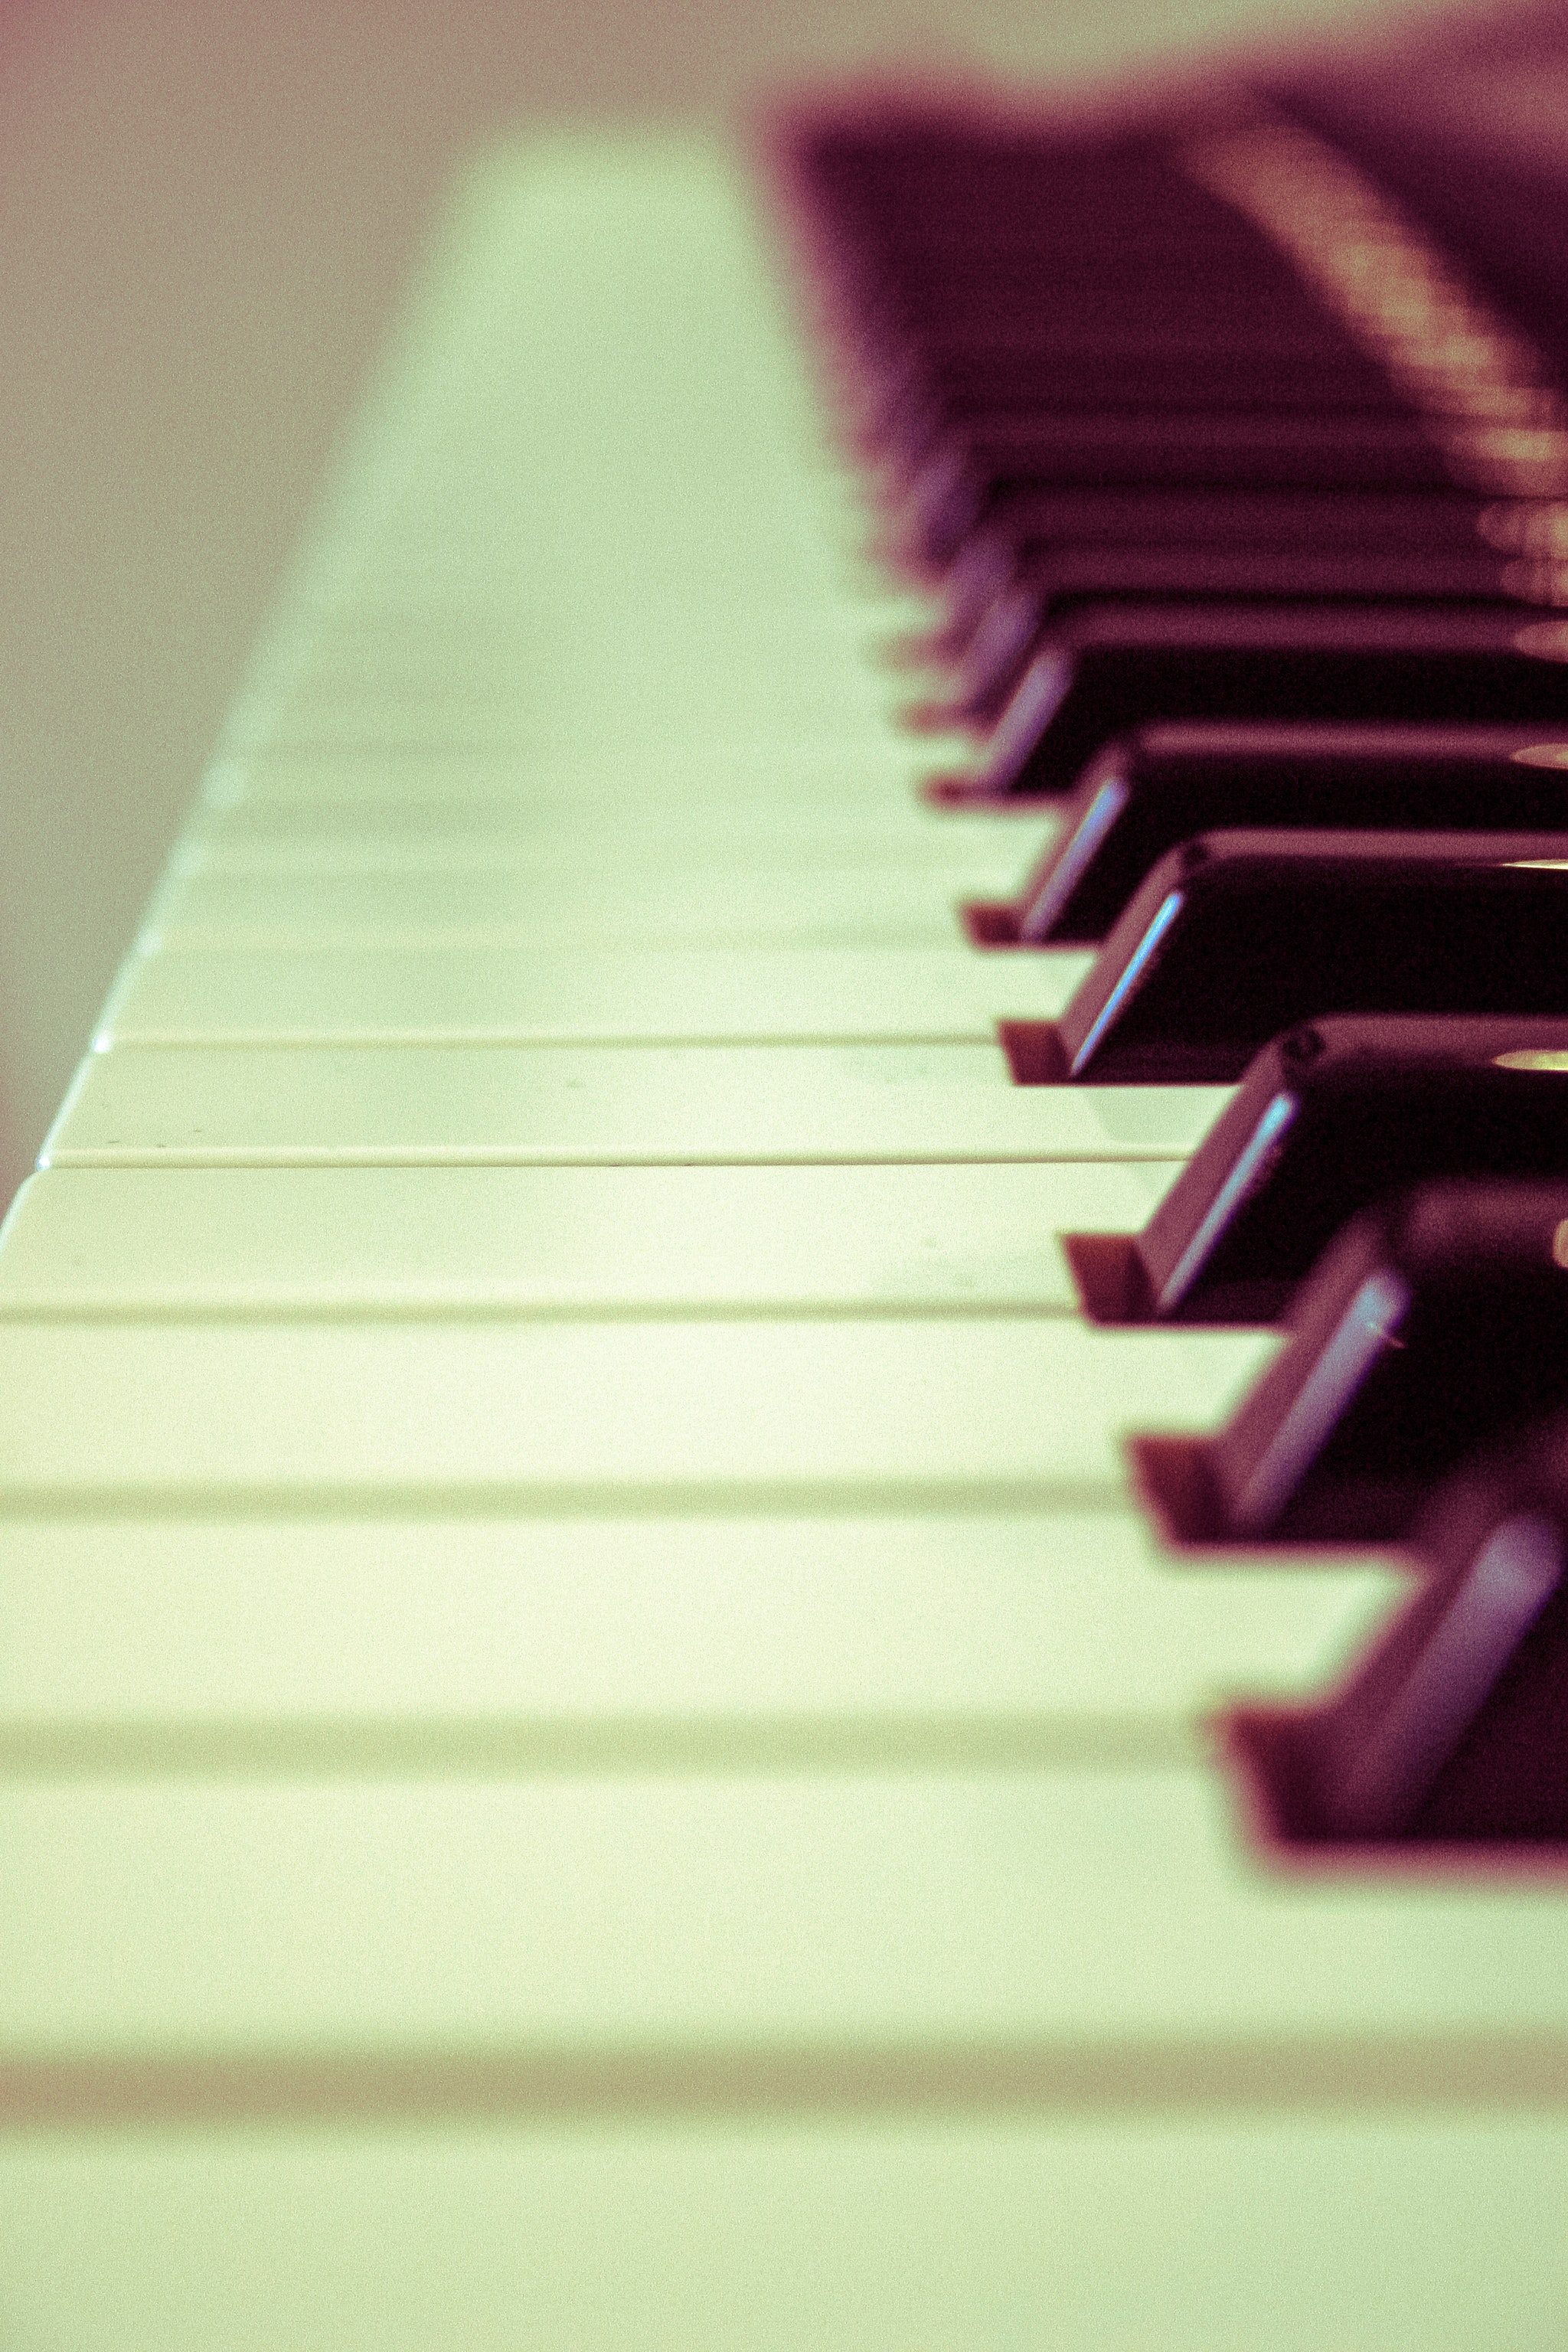 Close Up Photo of Piano Keys · Free Stock Photo